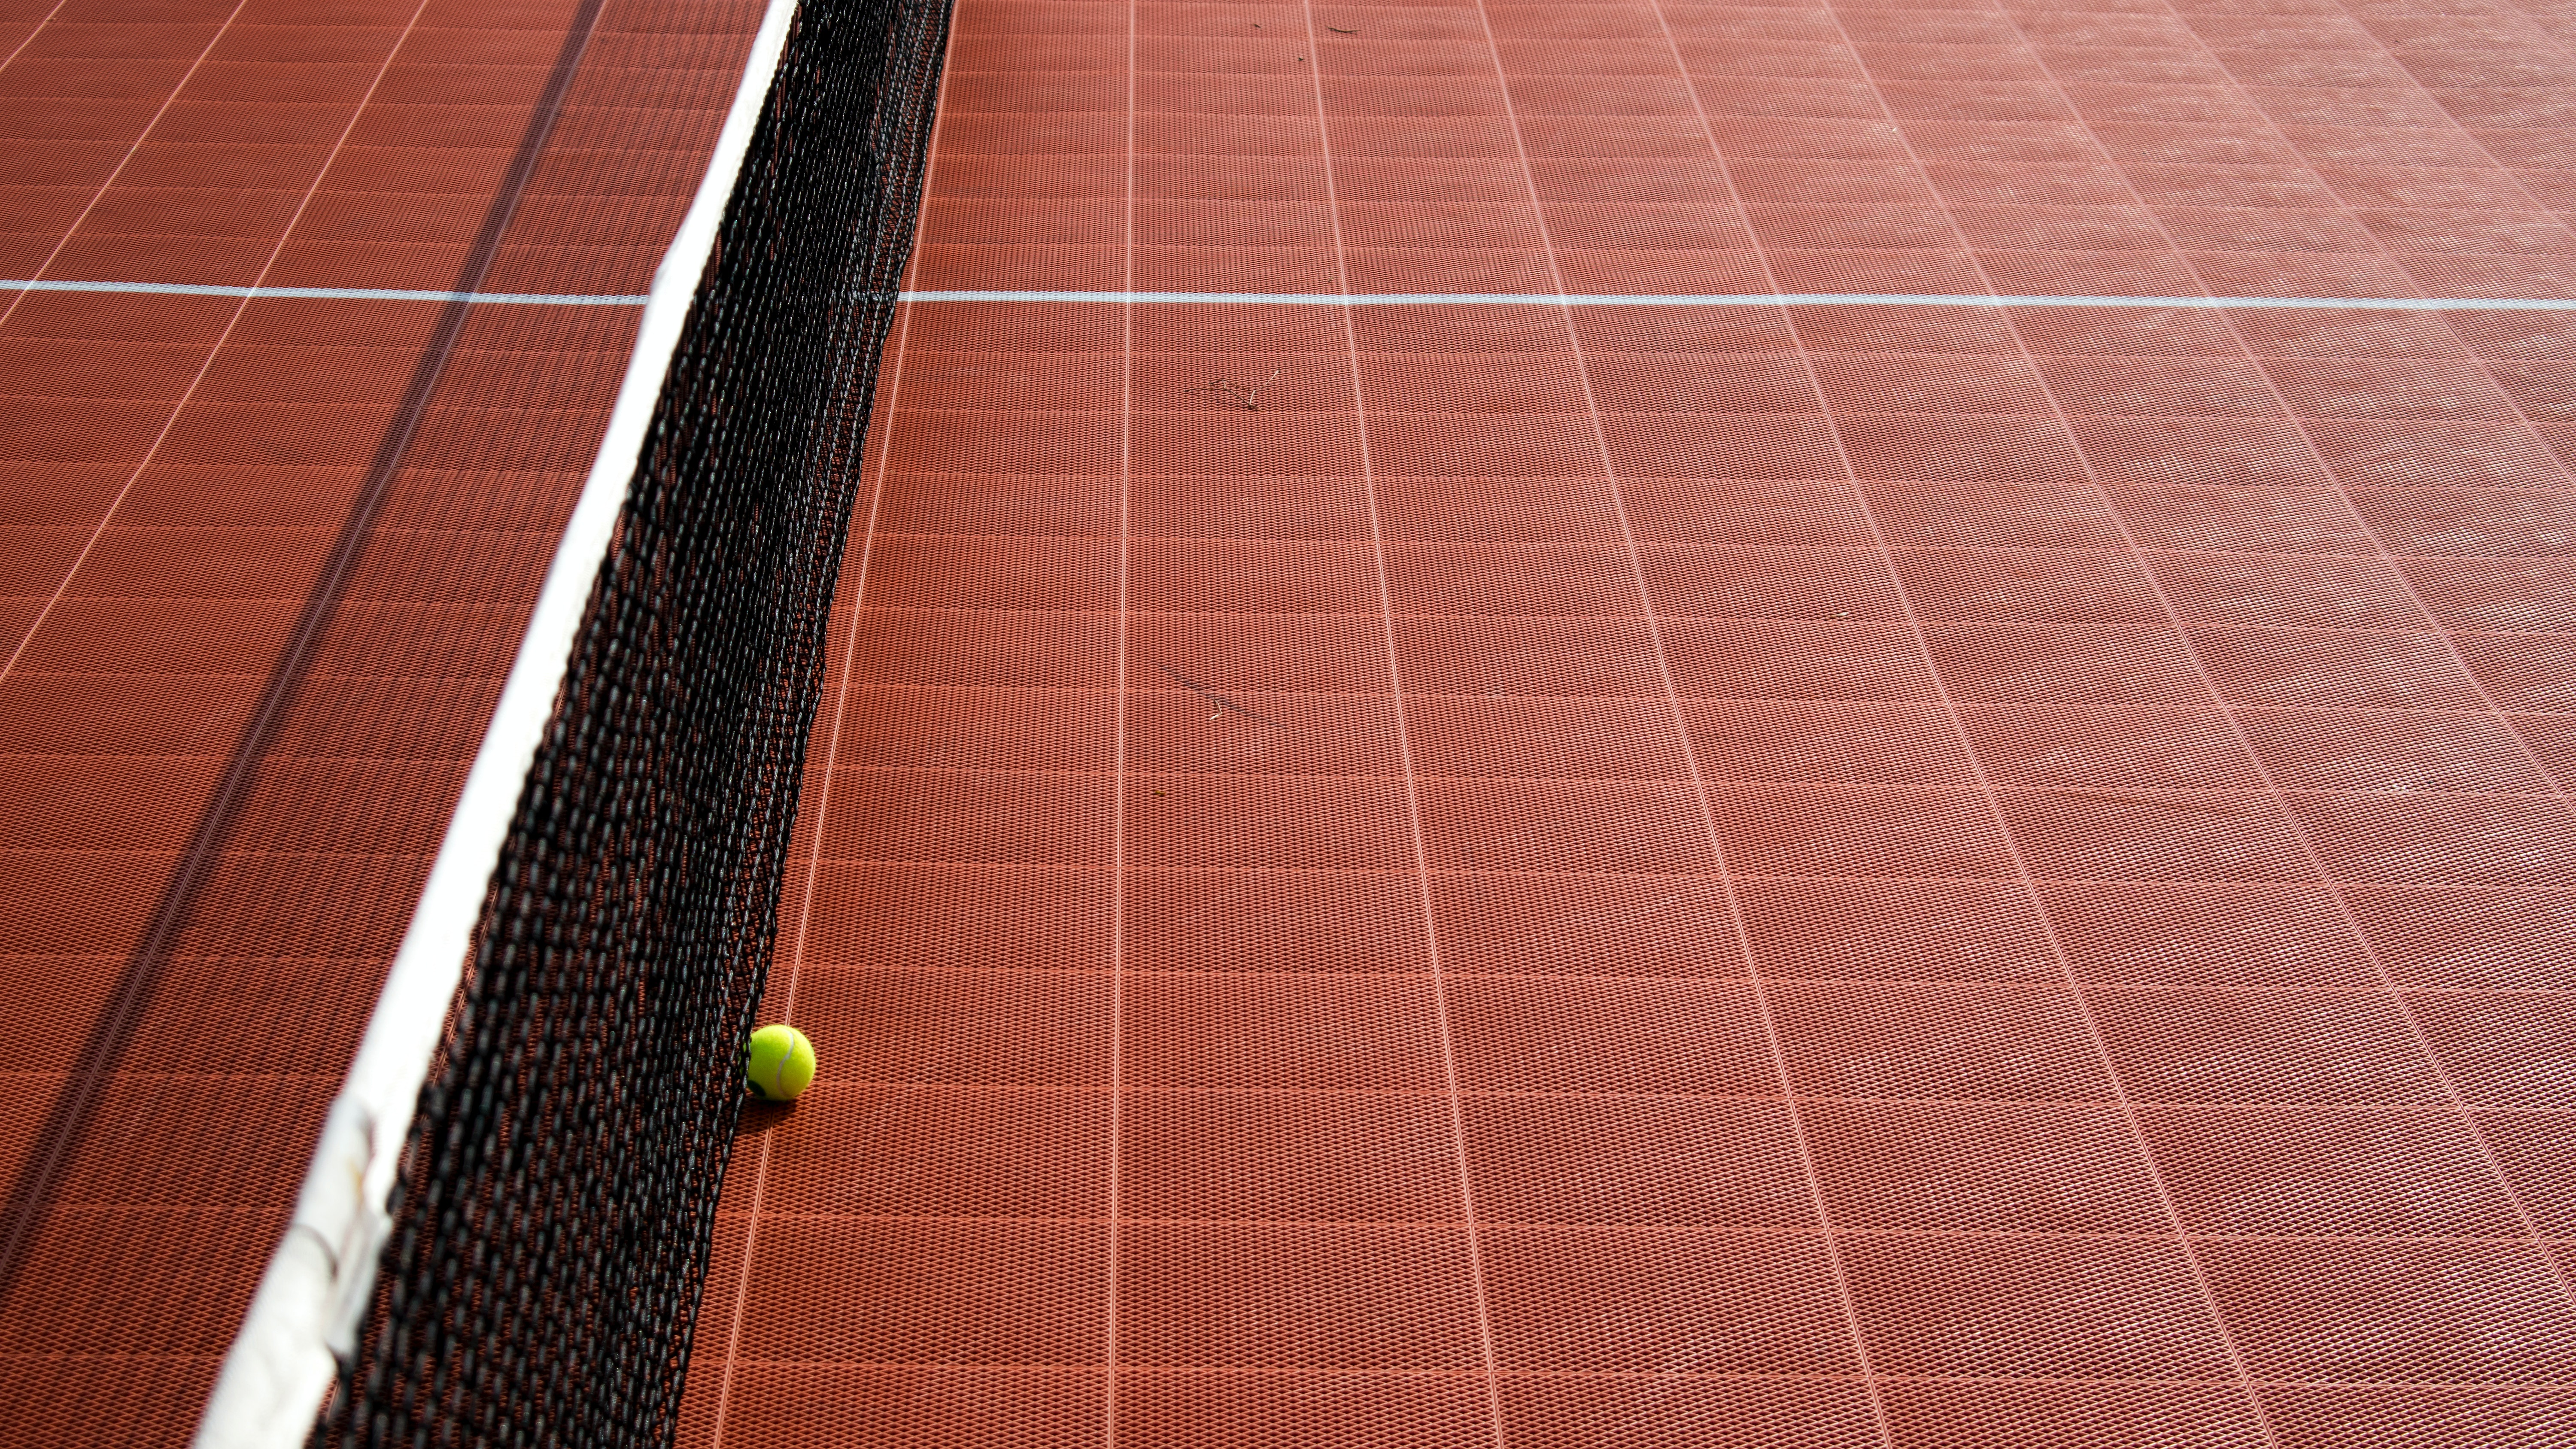 Free stock photo of tennis, tennis ball, tennis court